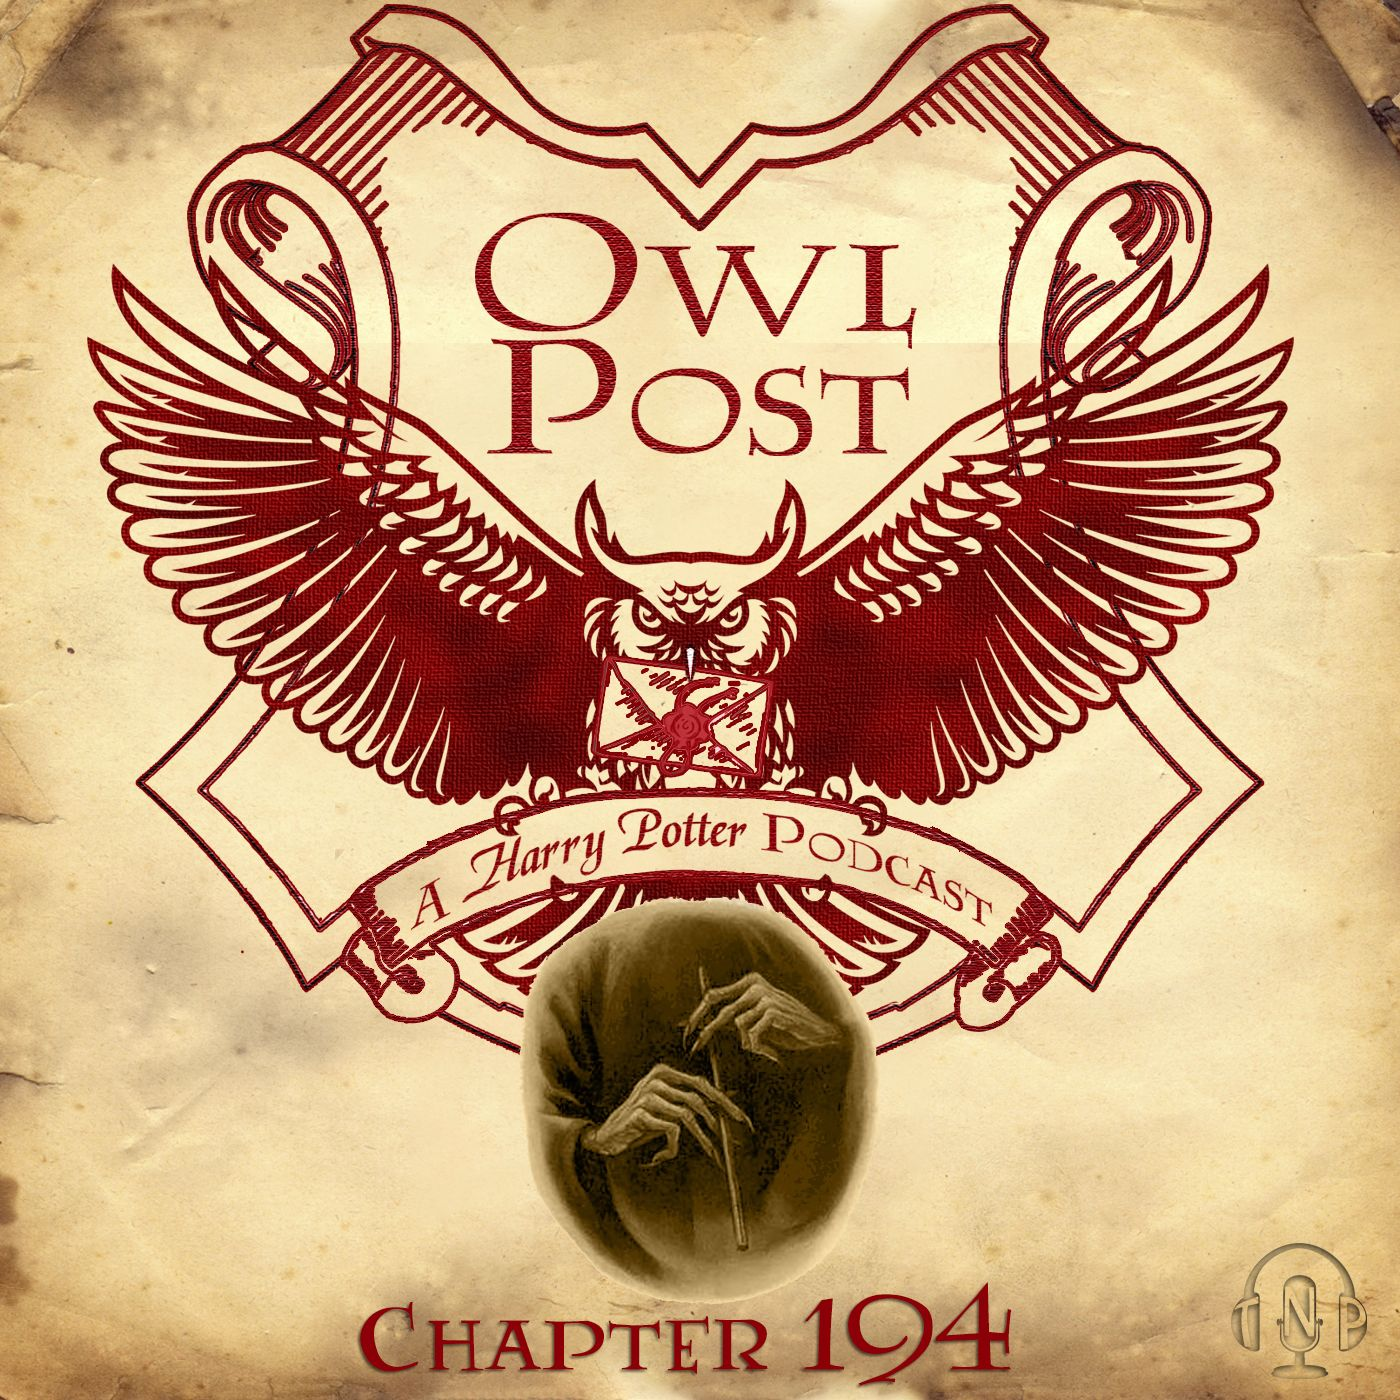 Chapter 194: The Elder Wand